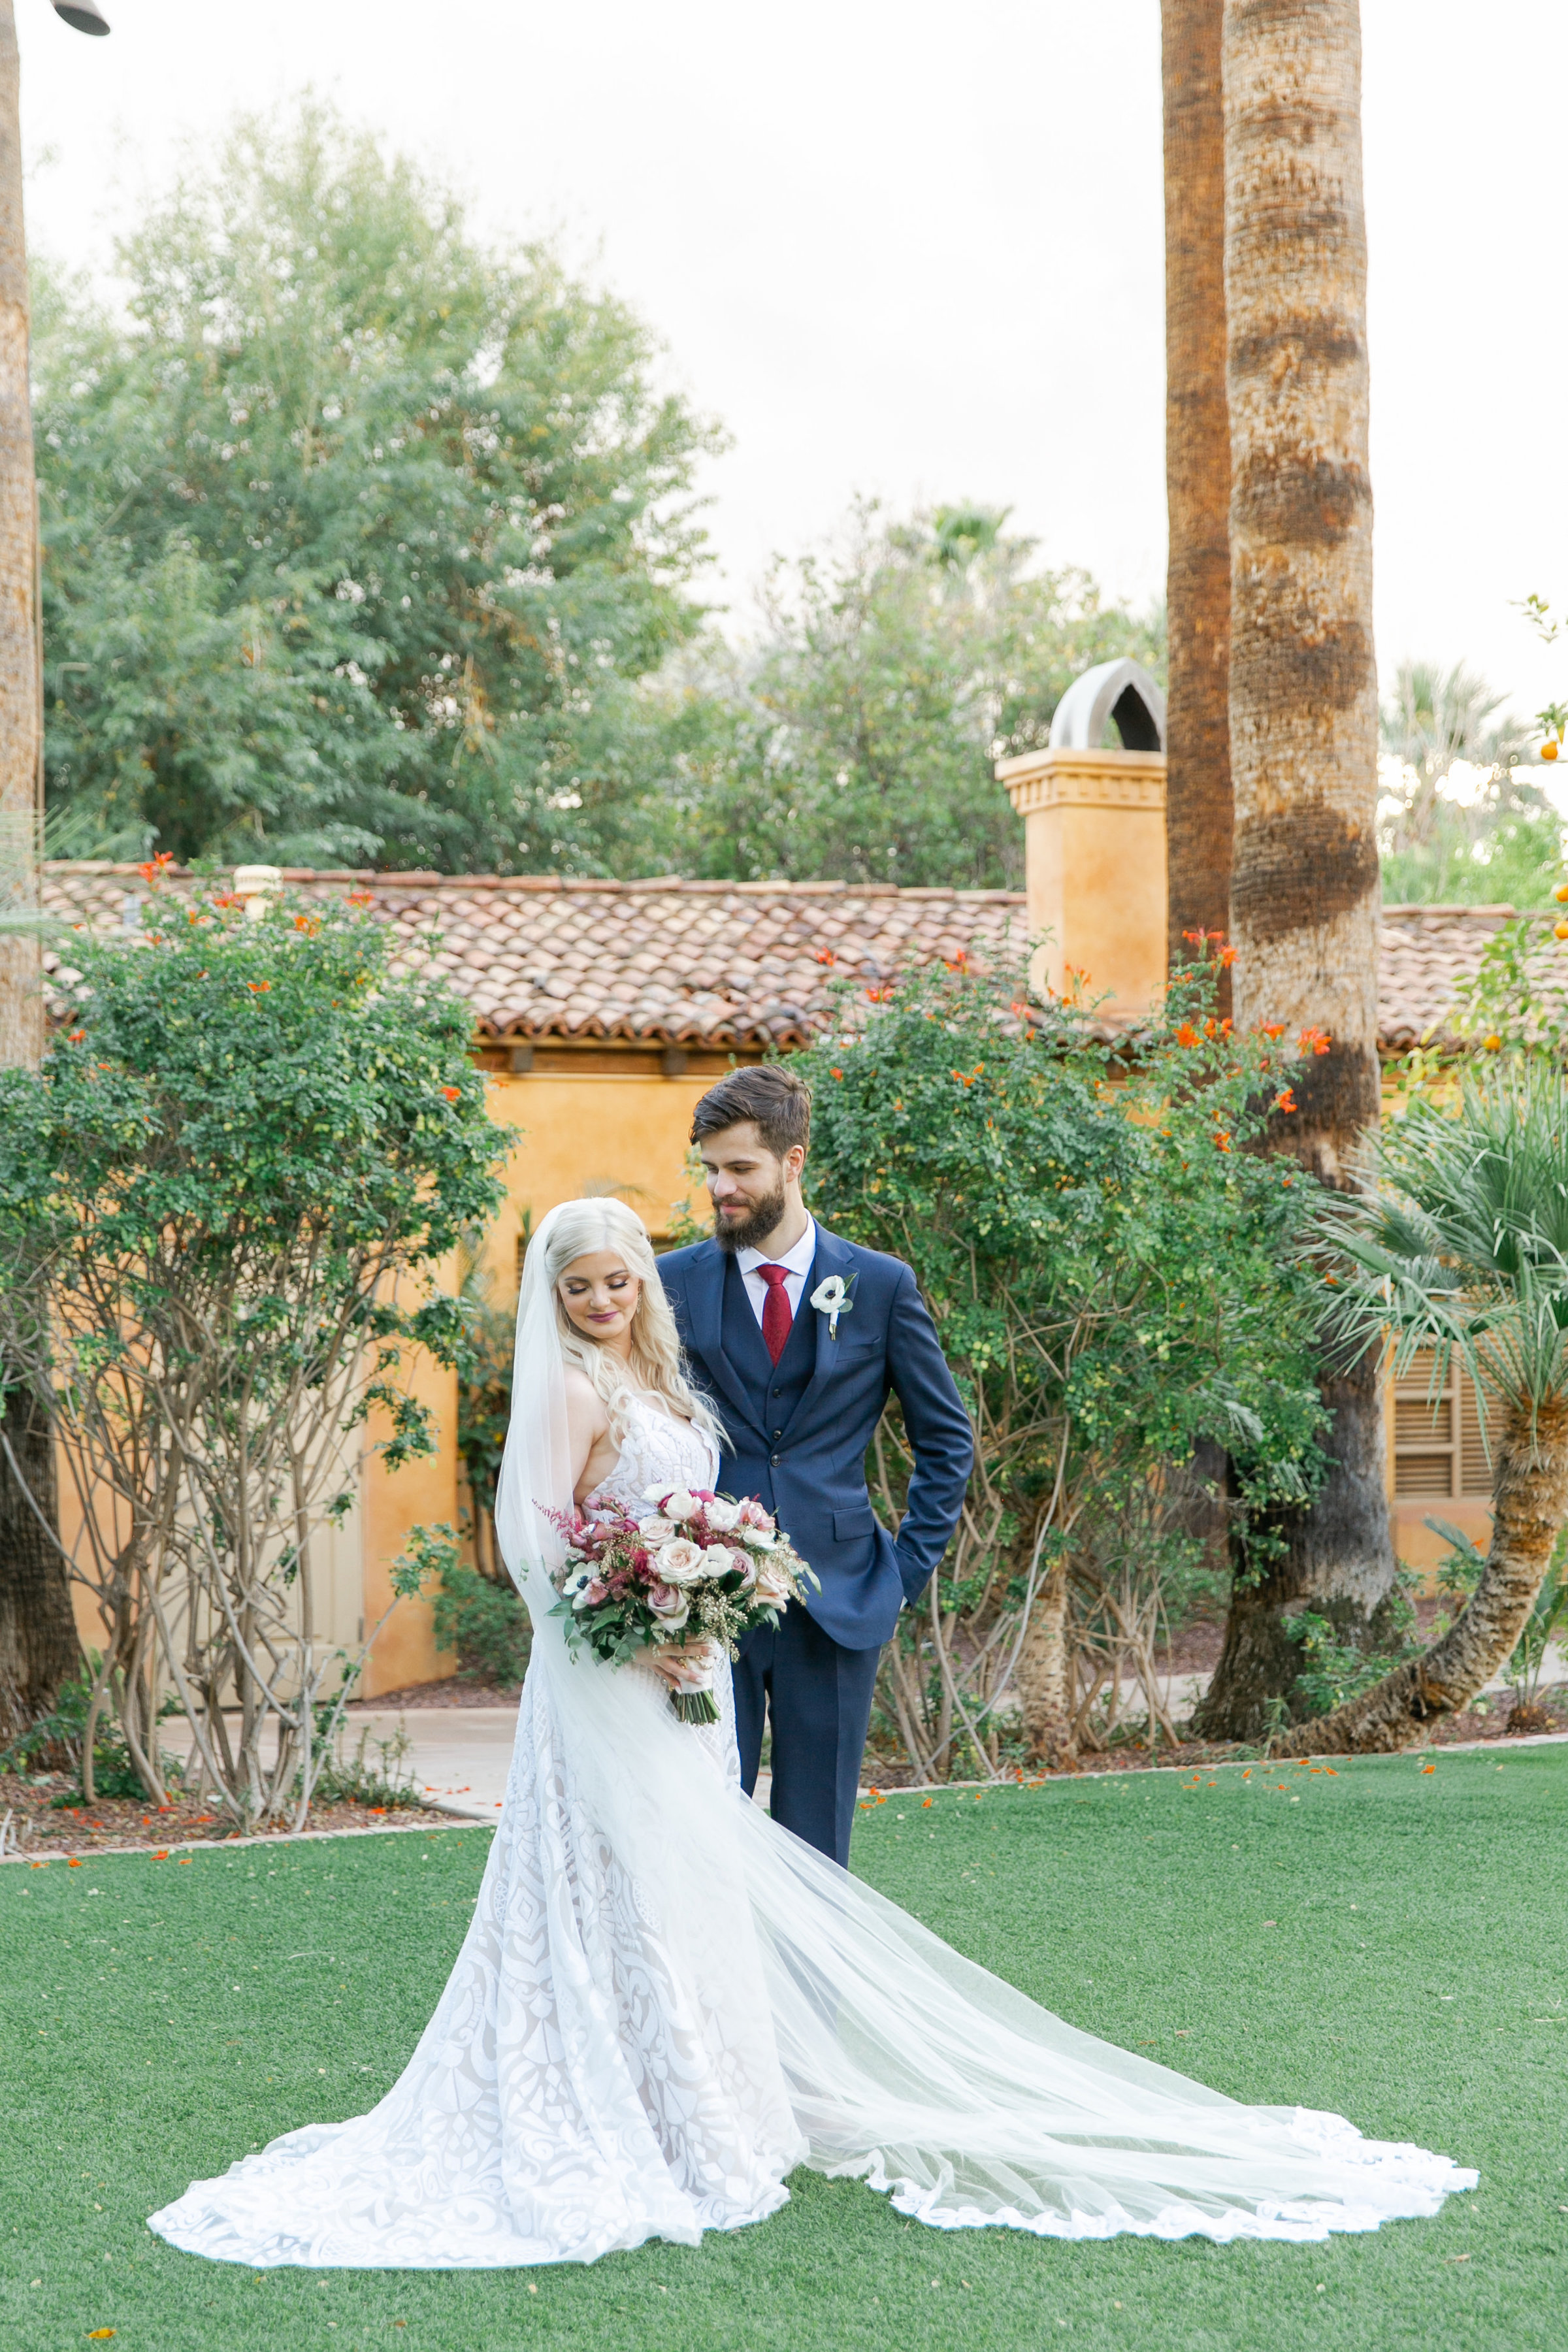 Karlie Colleen Photography - The Royal Palms Wedding - Some Like It Classic - Alex & Sam-483